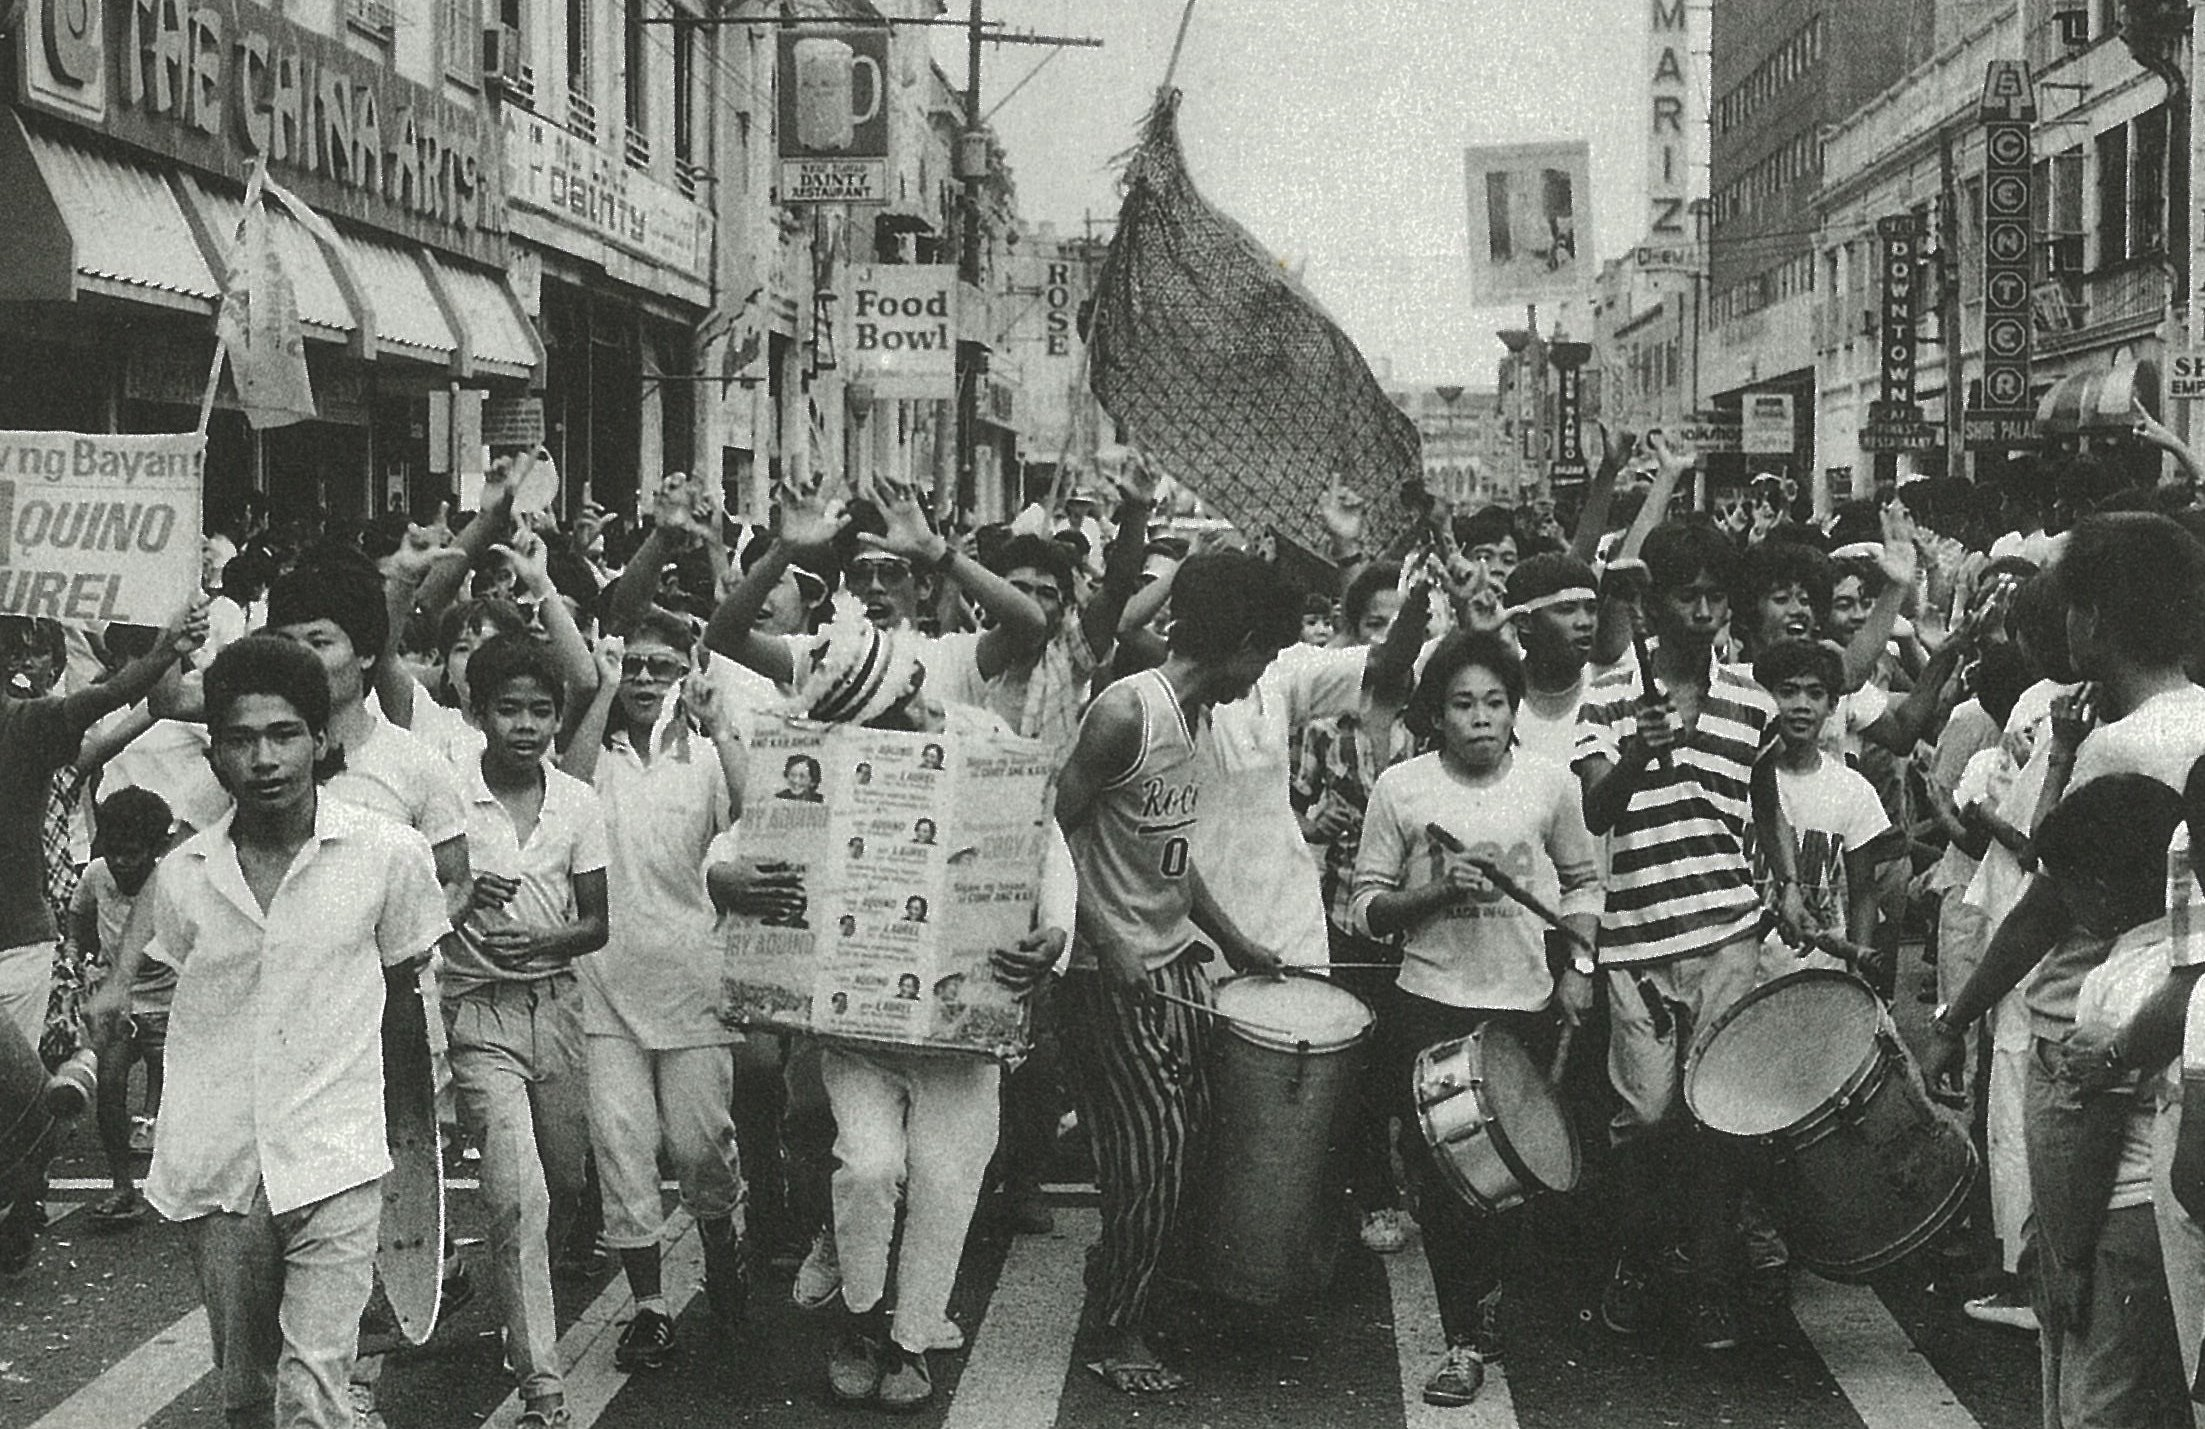 People marching during the EDSA People Power in 1986 (Photo courtesy of the Official Gazette of the Philippines)